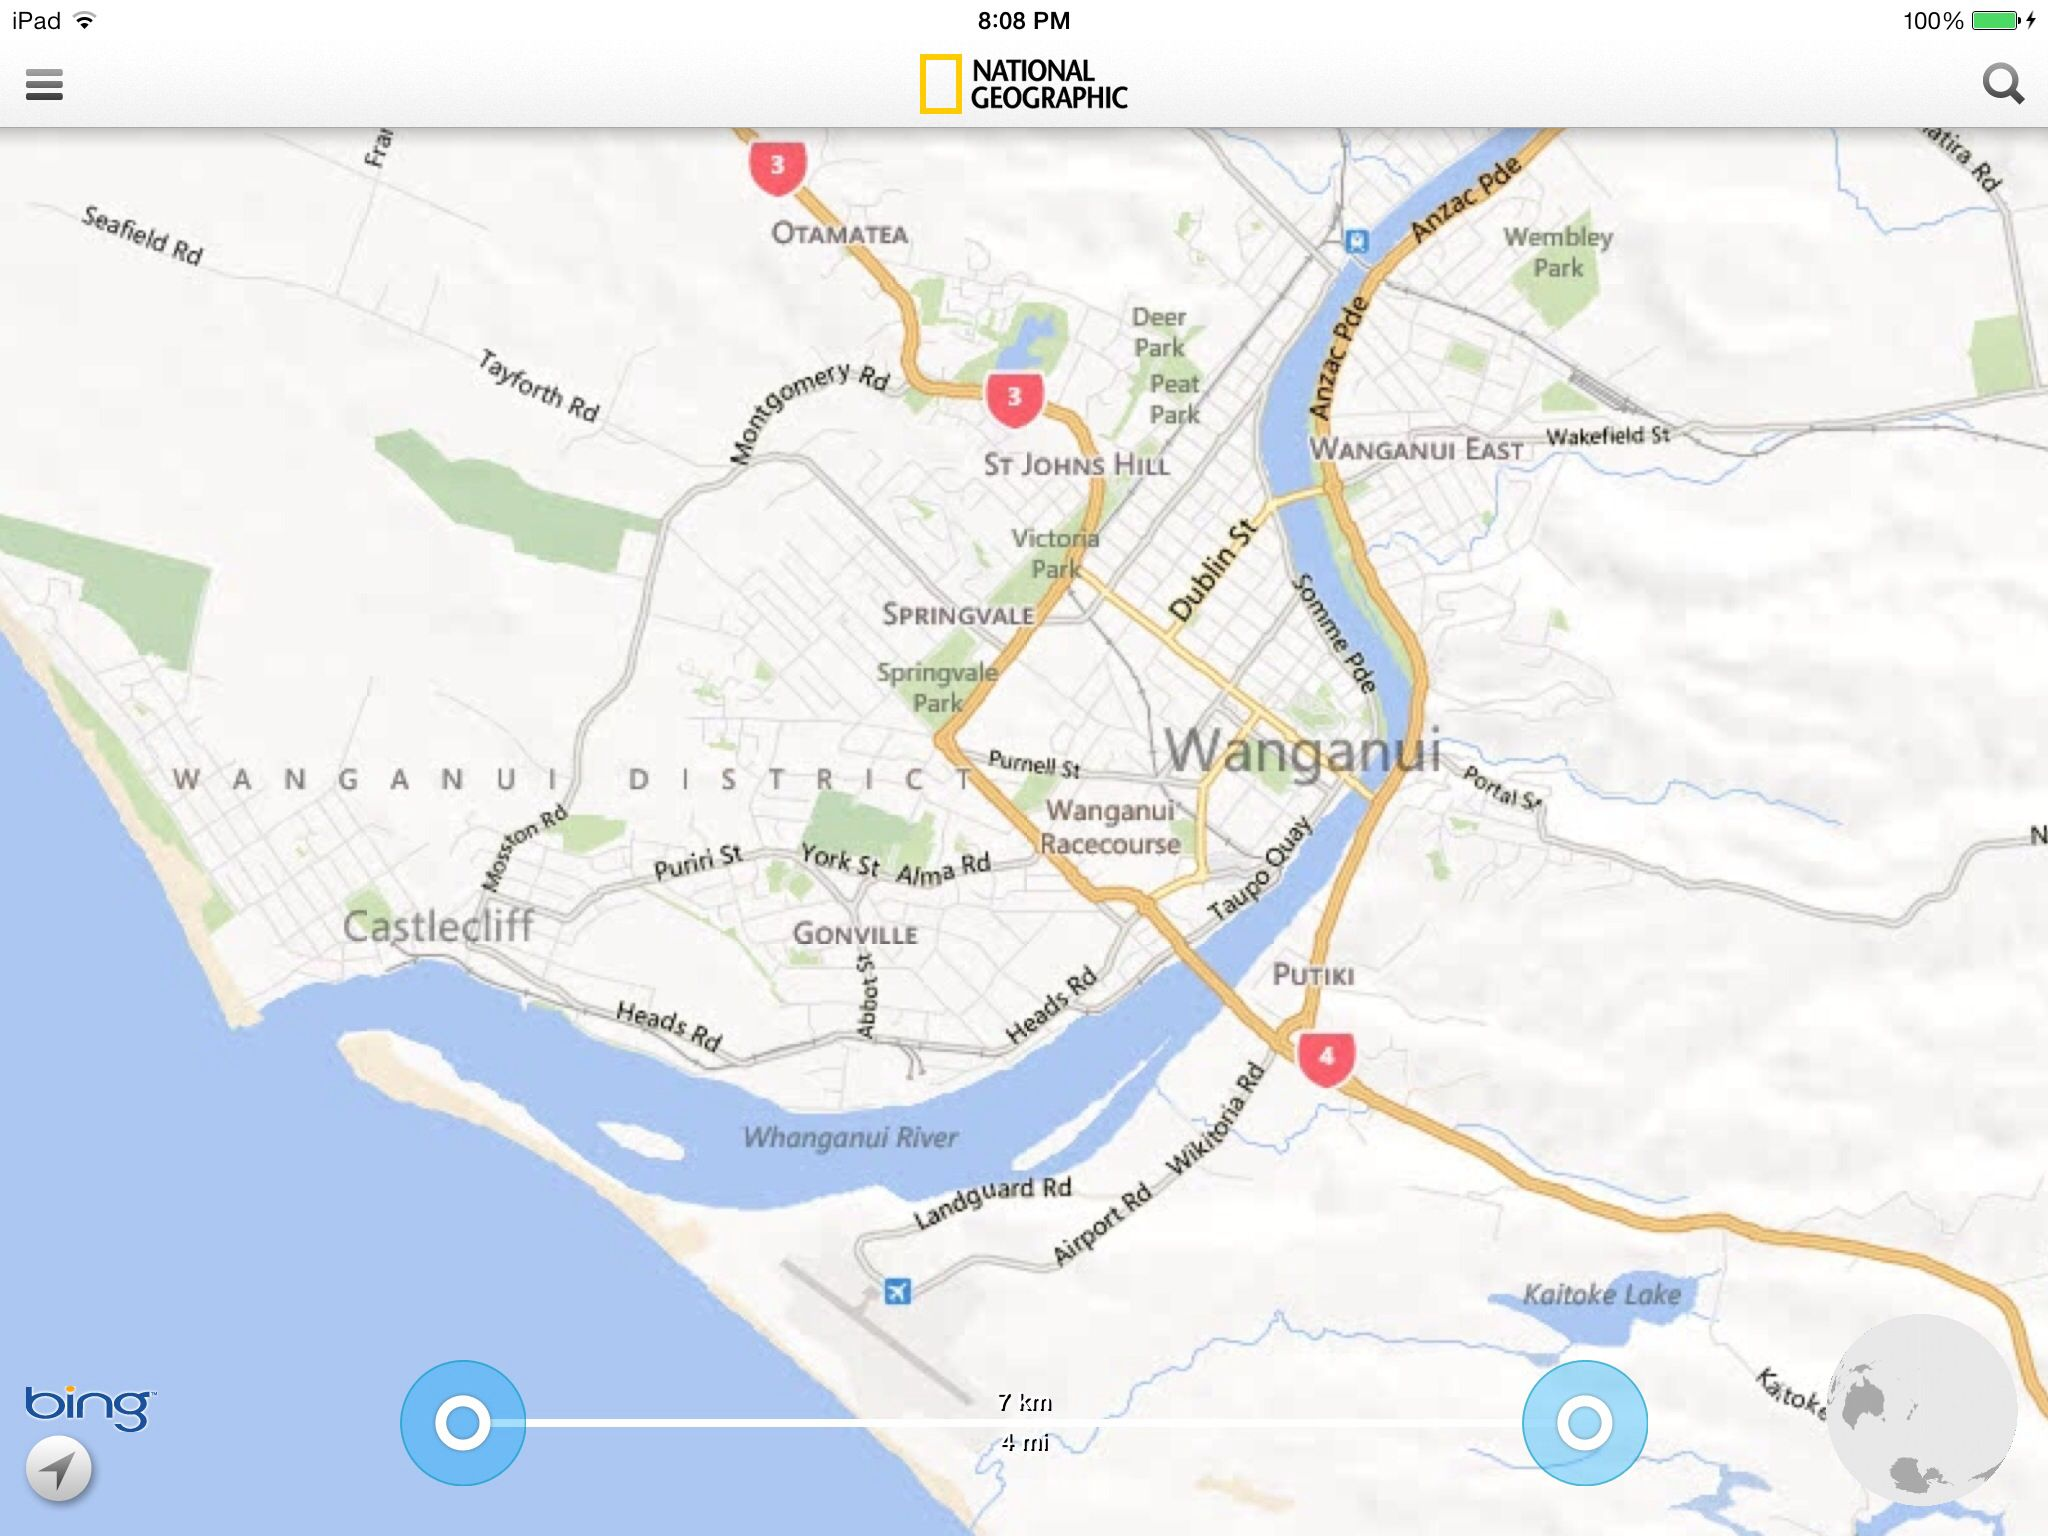 Where Is Wanganui In New Zealand Map.Map Of Wanganui New Zealand Kiwi Land New Zealand New